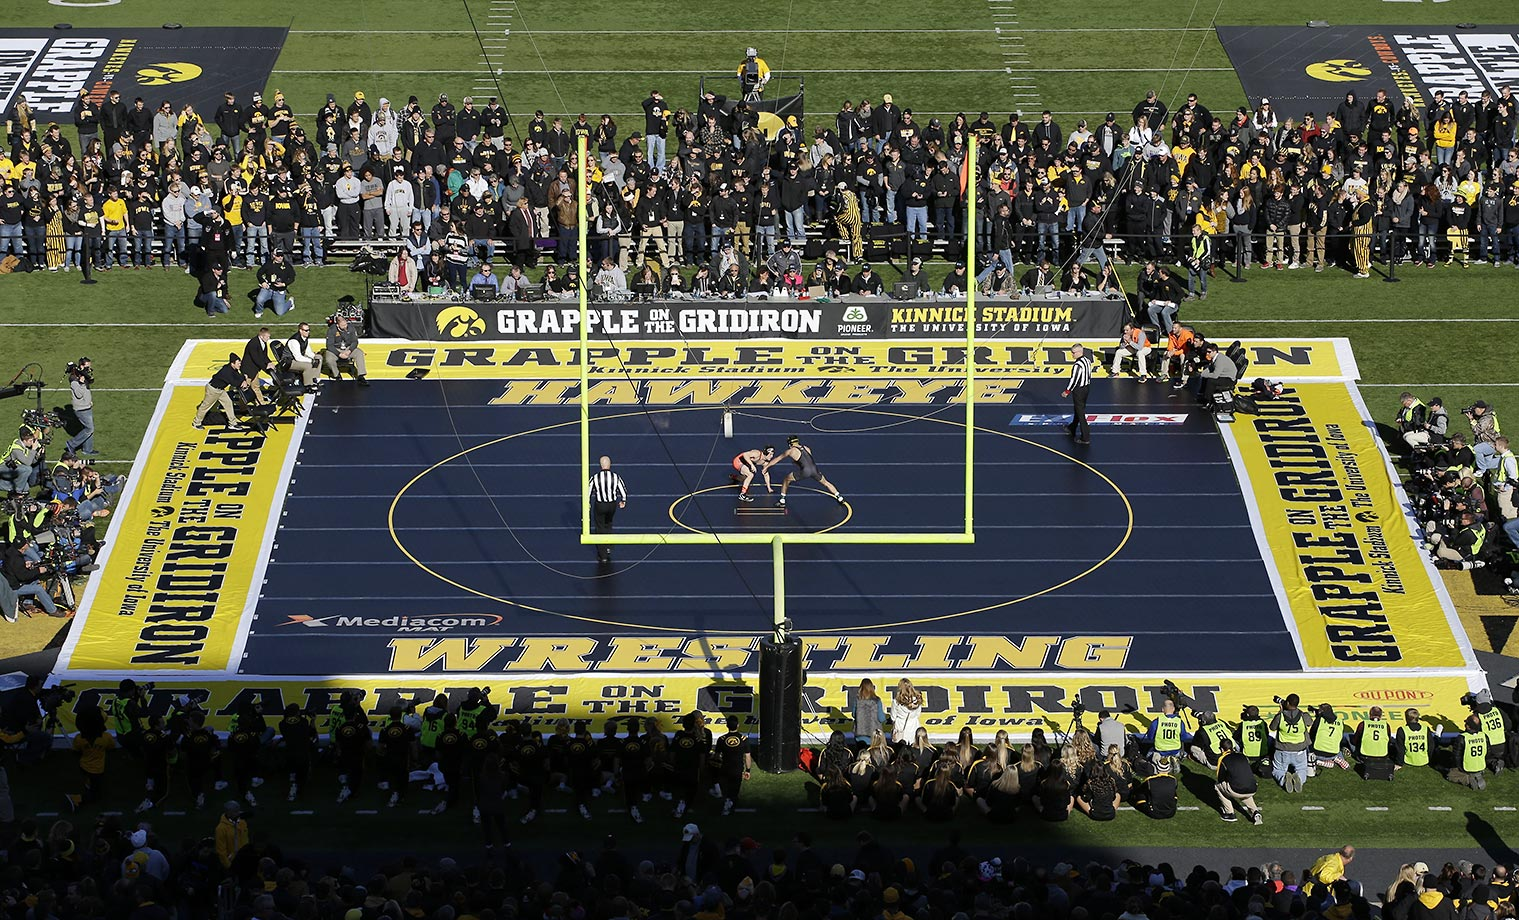 Oklahoma State and Iowa grapple during an NCAA college wrestling match that took place on the football field at Kinnick Stadium.